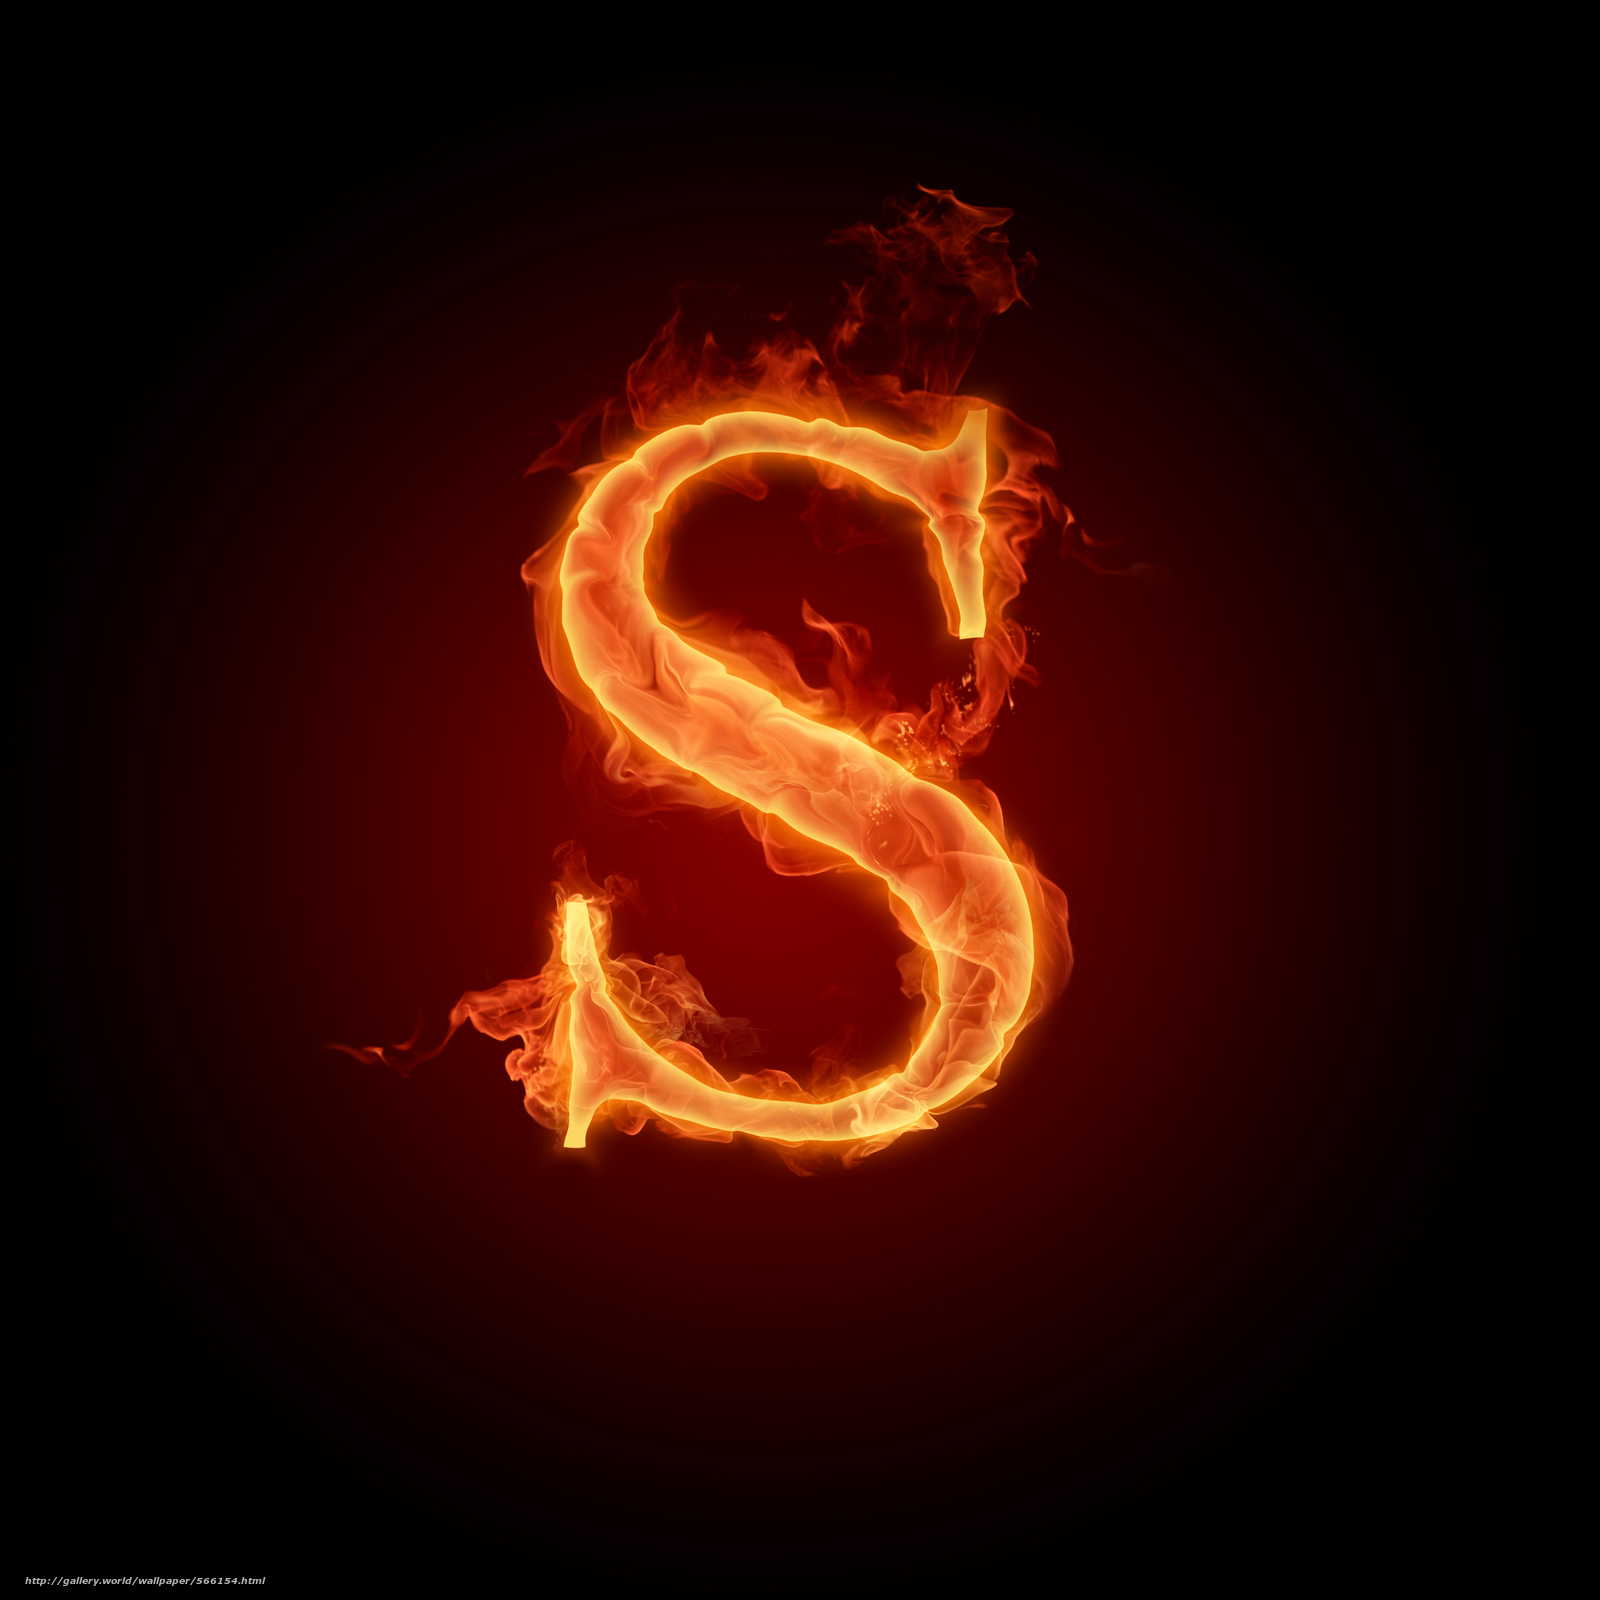 Download wallpaper letter letter flame fire free desktop wallpaper in the resolution 3000x3000 picture 566154